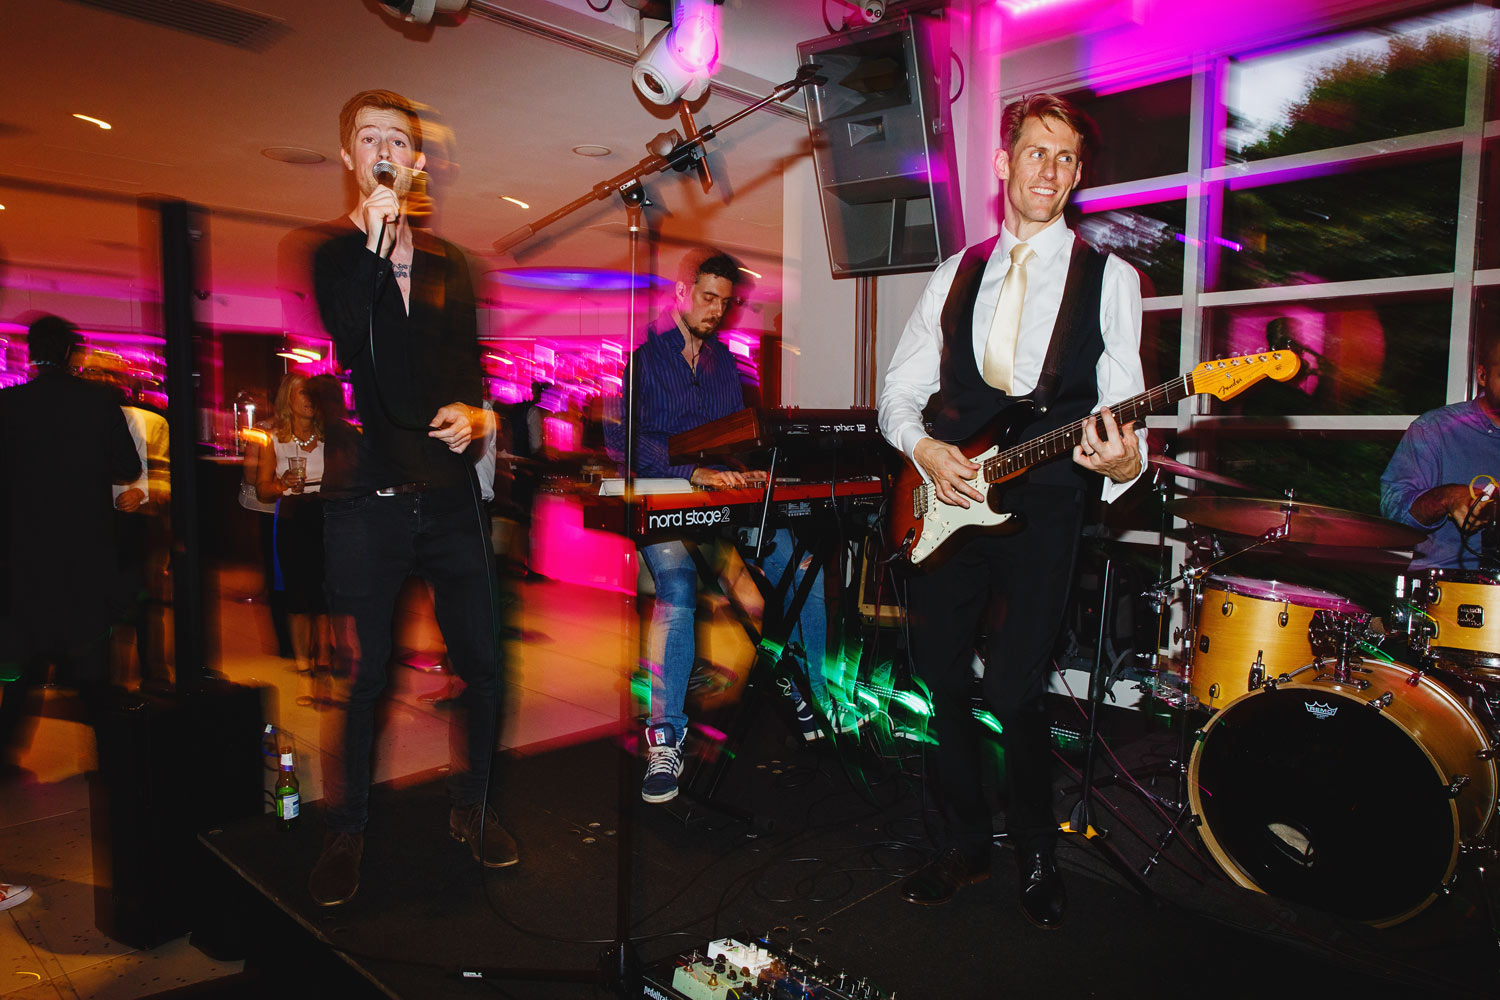 The groom plays guitar onstage at the Roof Gardens in Kensington - London wedding photographer